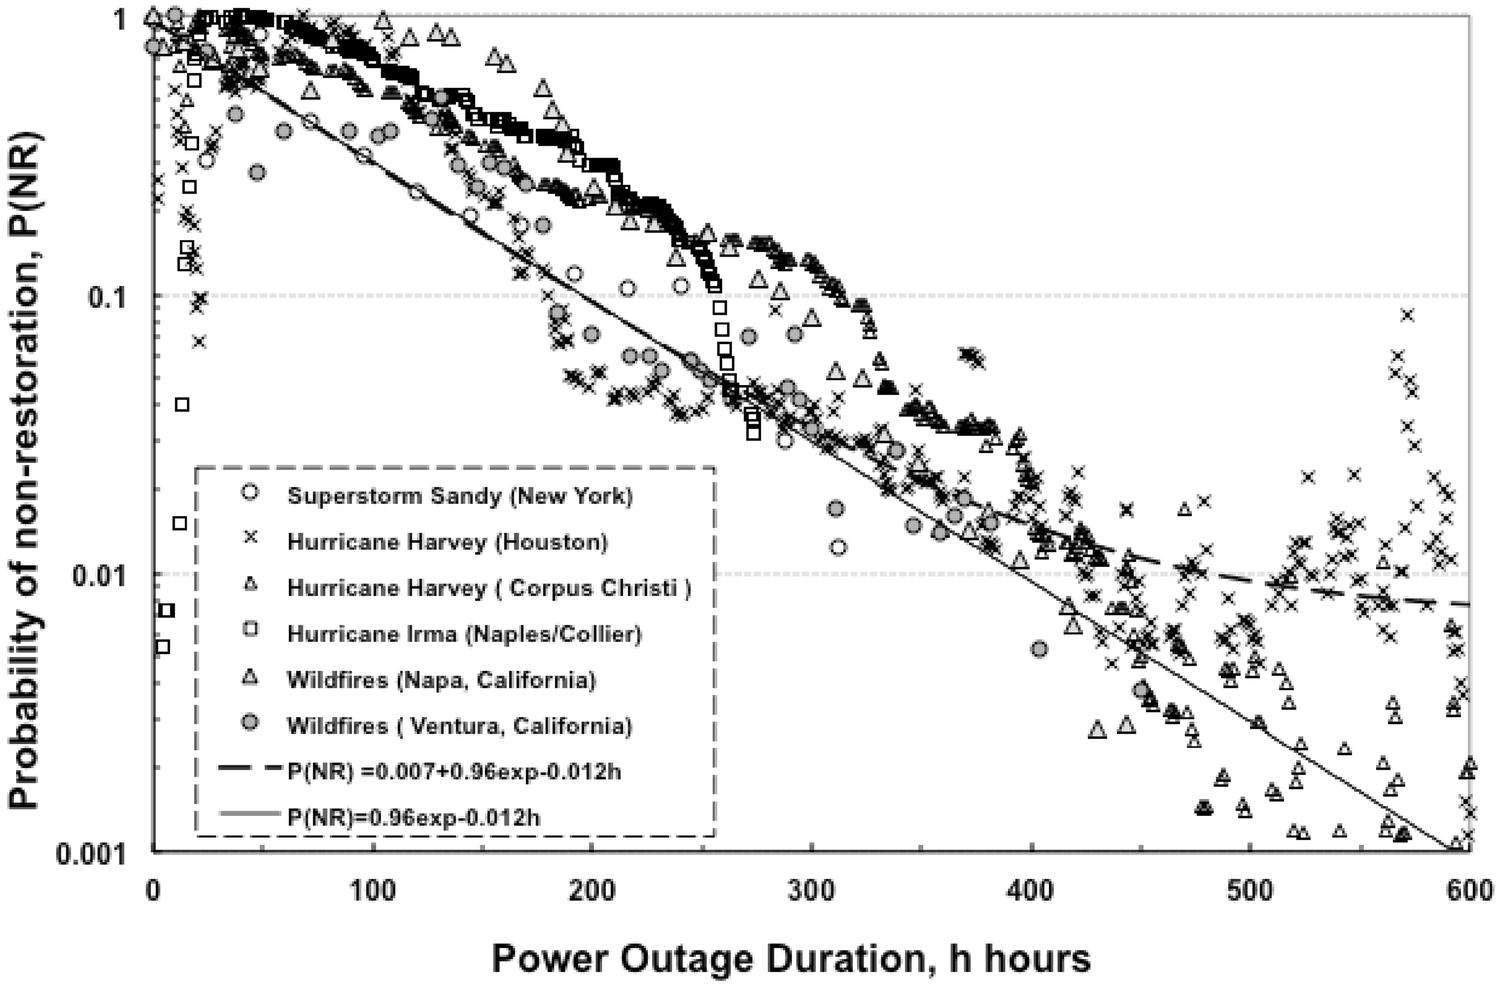 Power Restoration Prediction Following Extreme Events and Disasters on michigan public access map, michigan power outages map, northwestern energy power territory map,